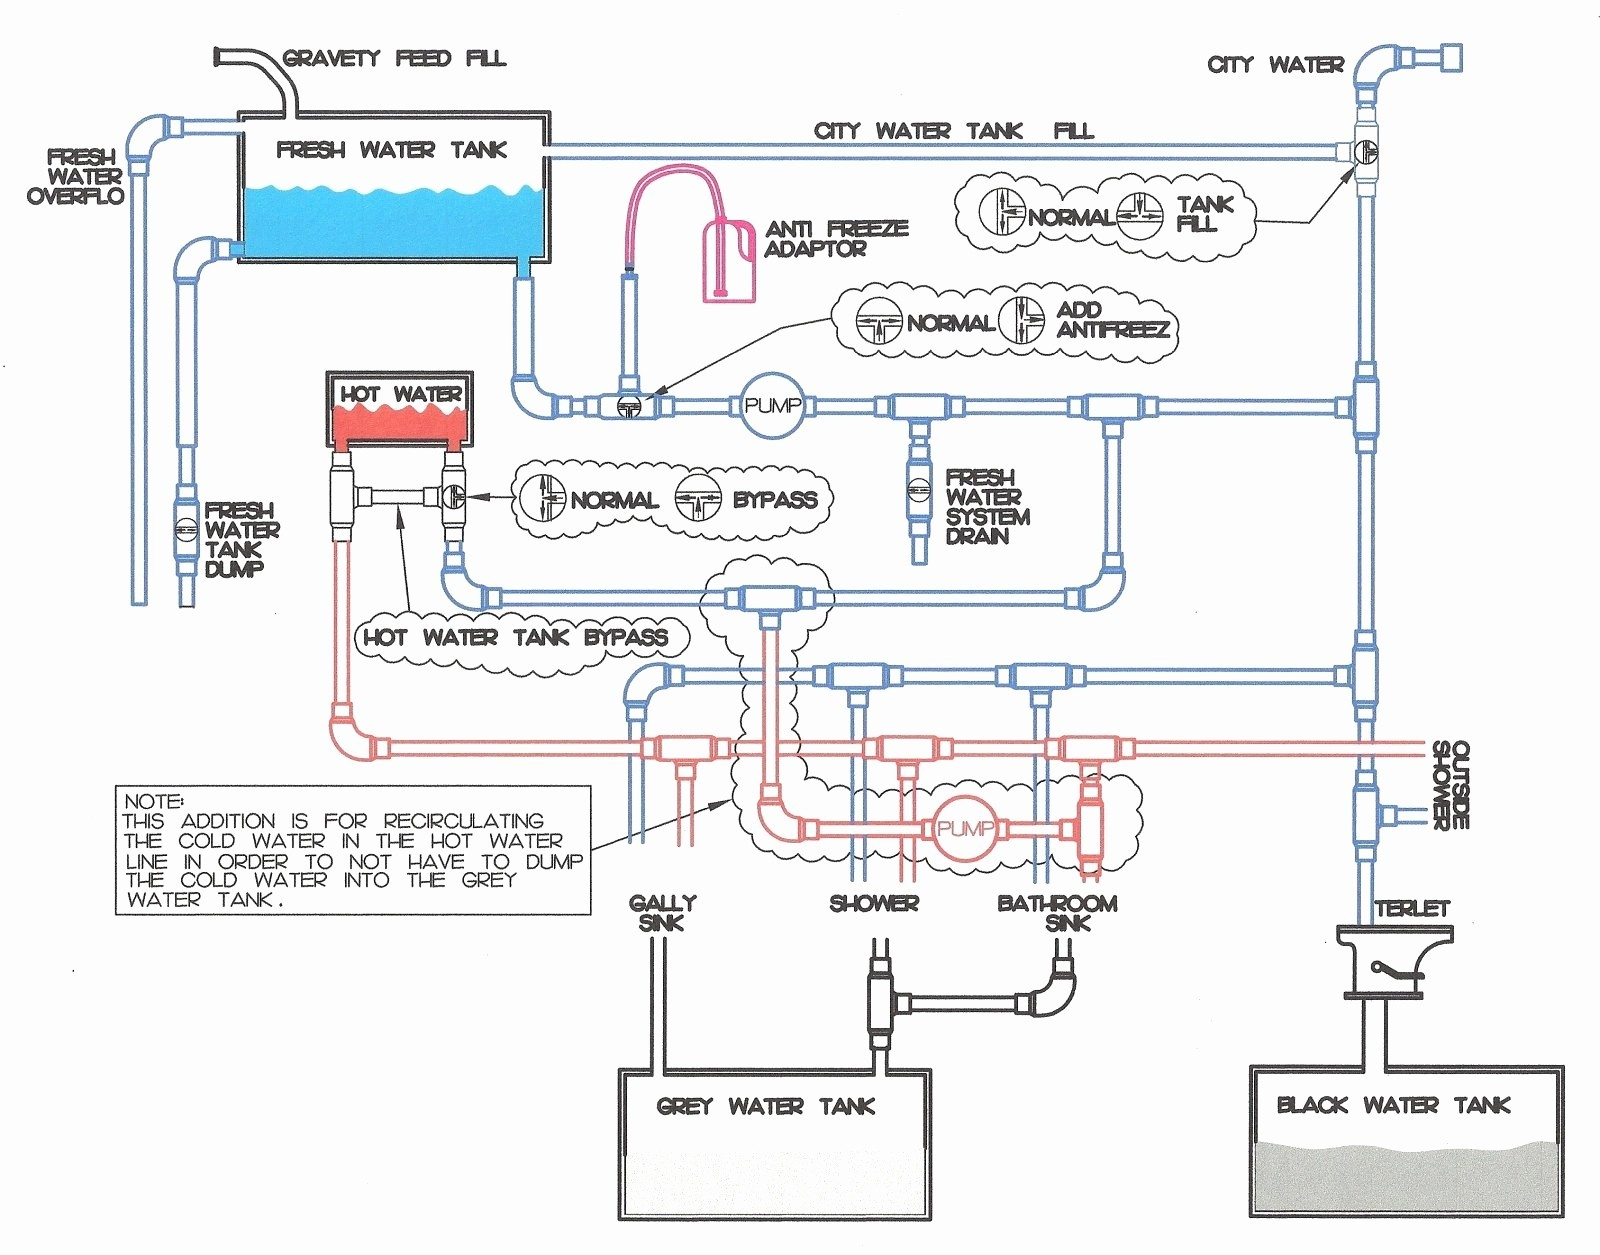 Keystone Fifth Wheel Wiring Diagram | Wiring Schematic Diagram on thermocouple for water heater, regulator for water heater, thermal fuse for water heater, cover for water heater, piping diagram for water heater, circuit breaker for water heater, wire for water heater, compressor for water heater, wiring diagram for water pump, timer for water heater, valve for water heater, expansion tank for water heater, motor for water heater, cabinet for water heater, coil for water heater, plug for water heater, thermostat for water heater, exhaust for water heater, switch for water heater, hose for water heater,